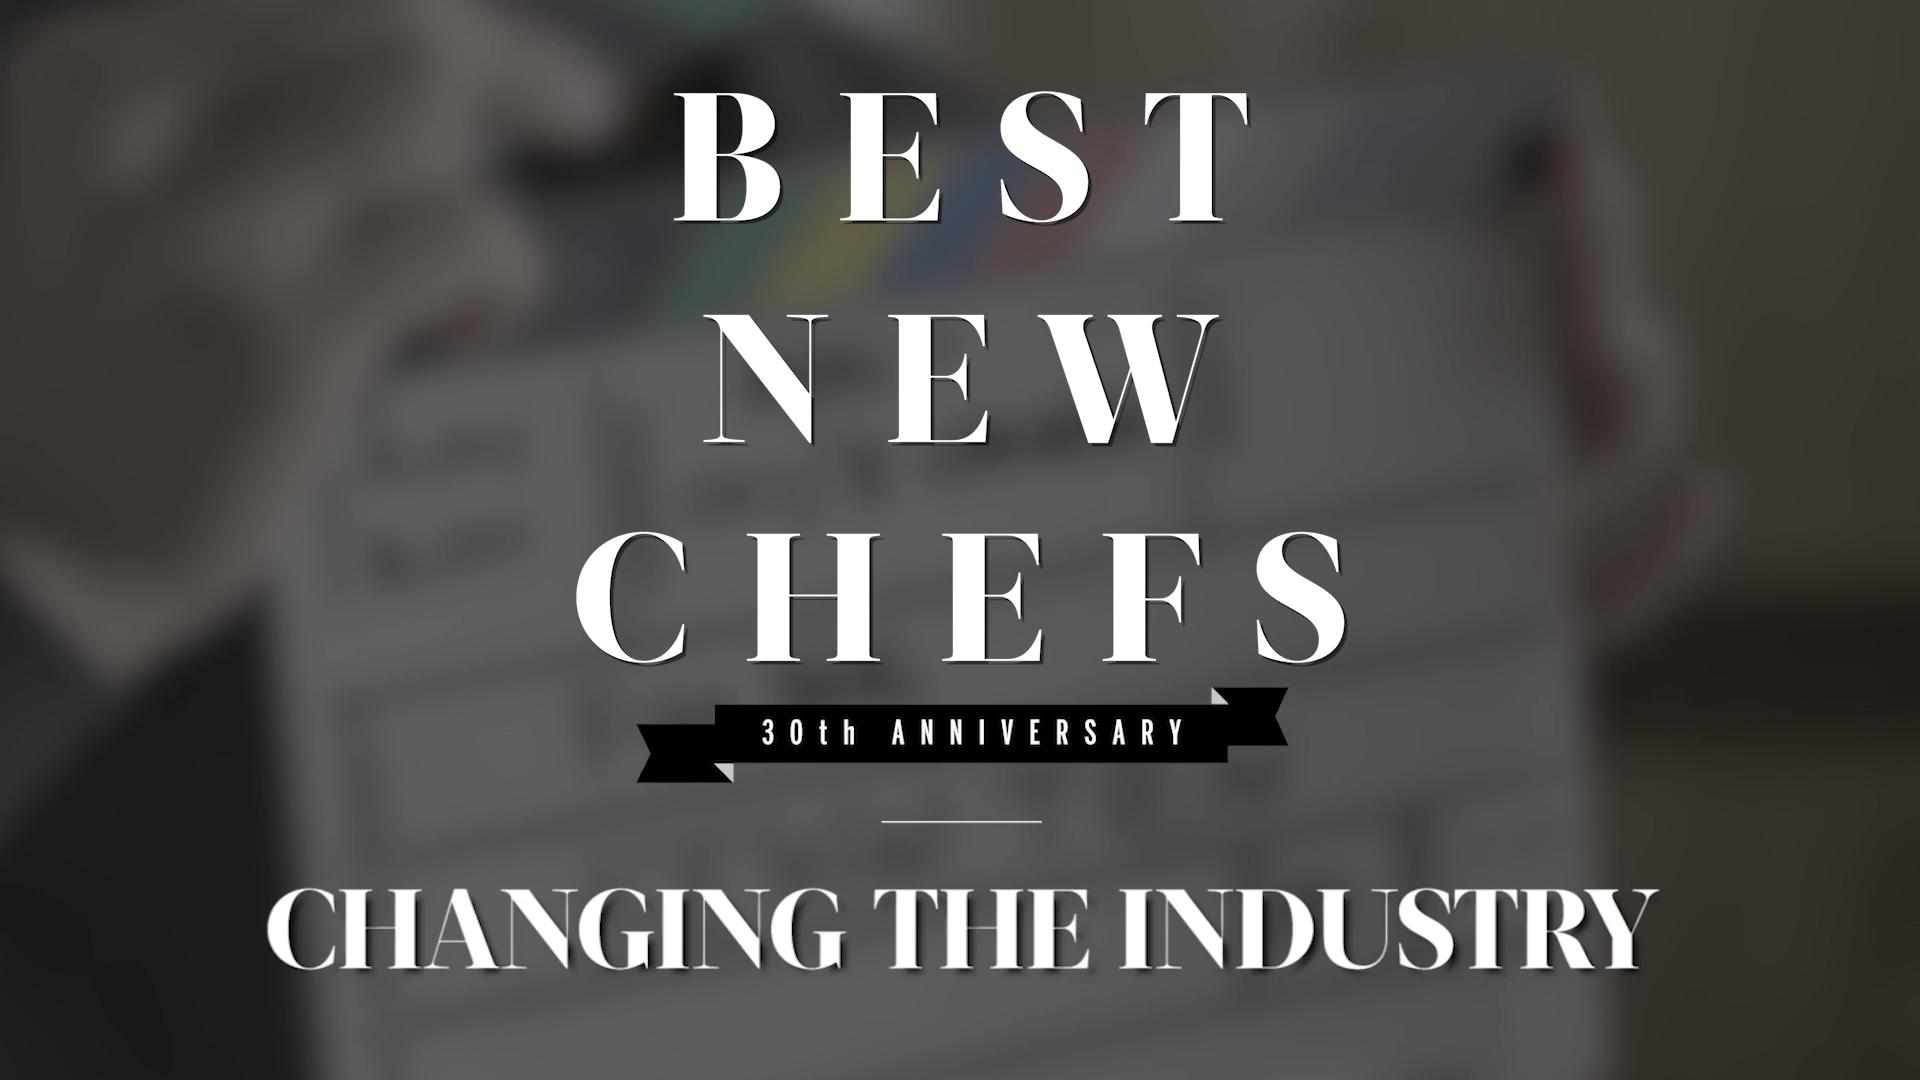 Food & Wine Best New Chefs 2018: Change for Good in the Restaurant Industry